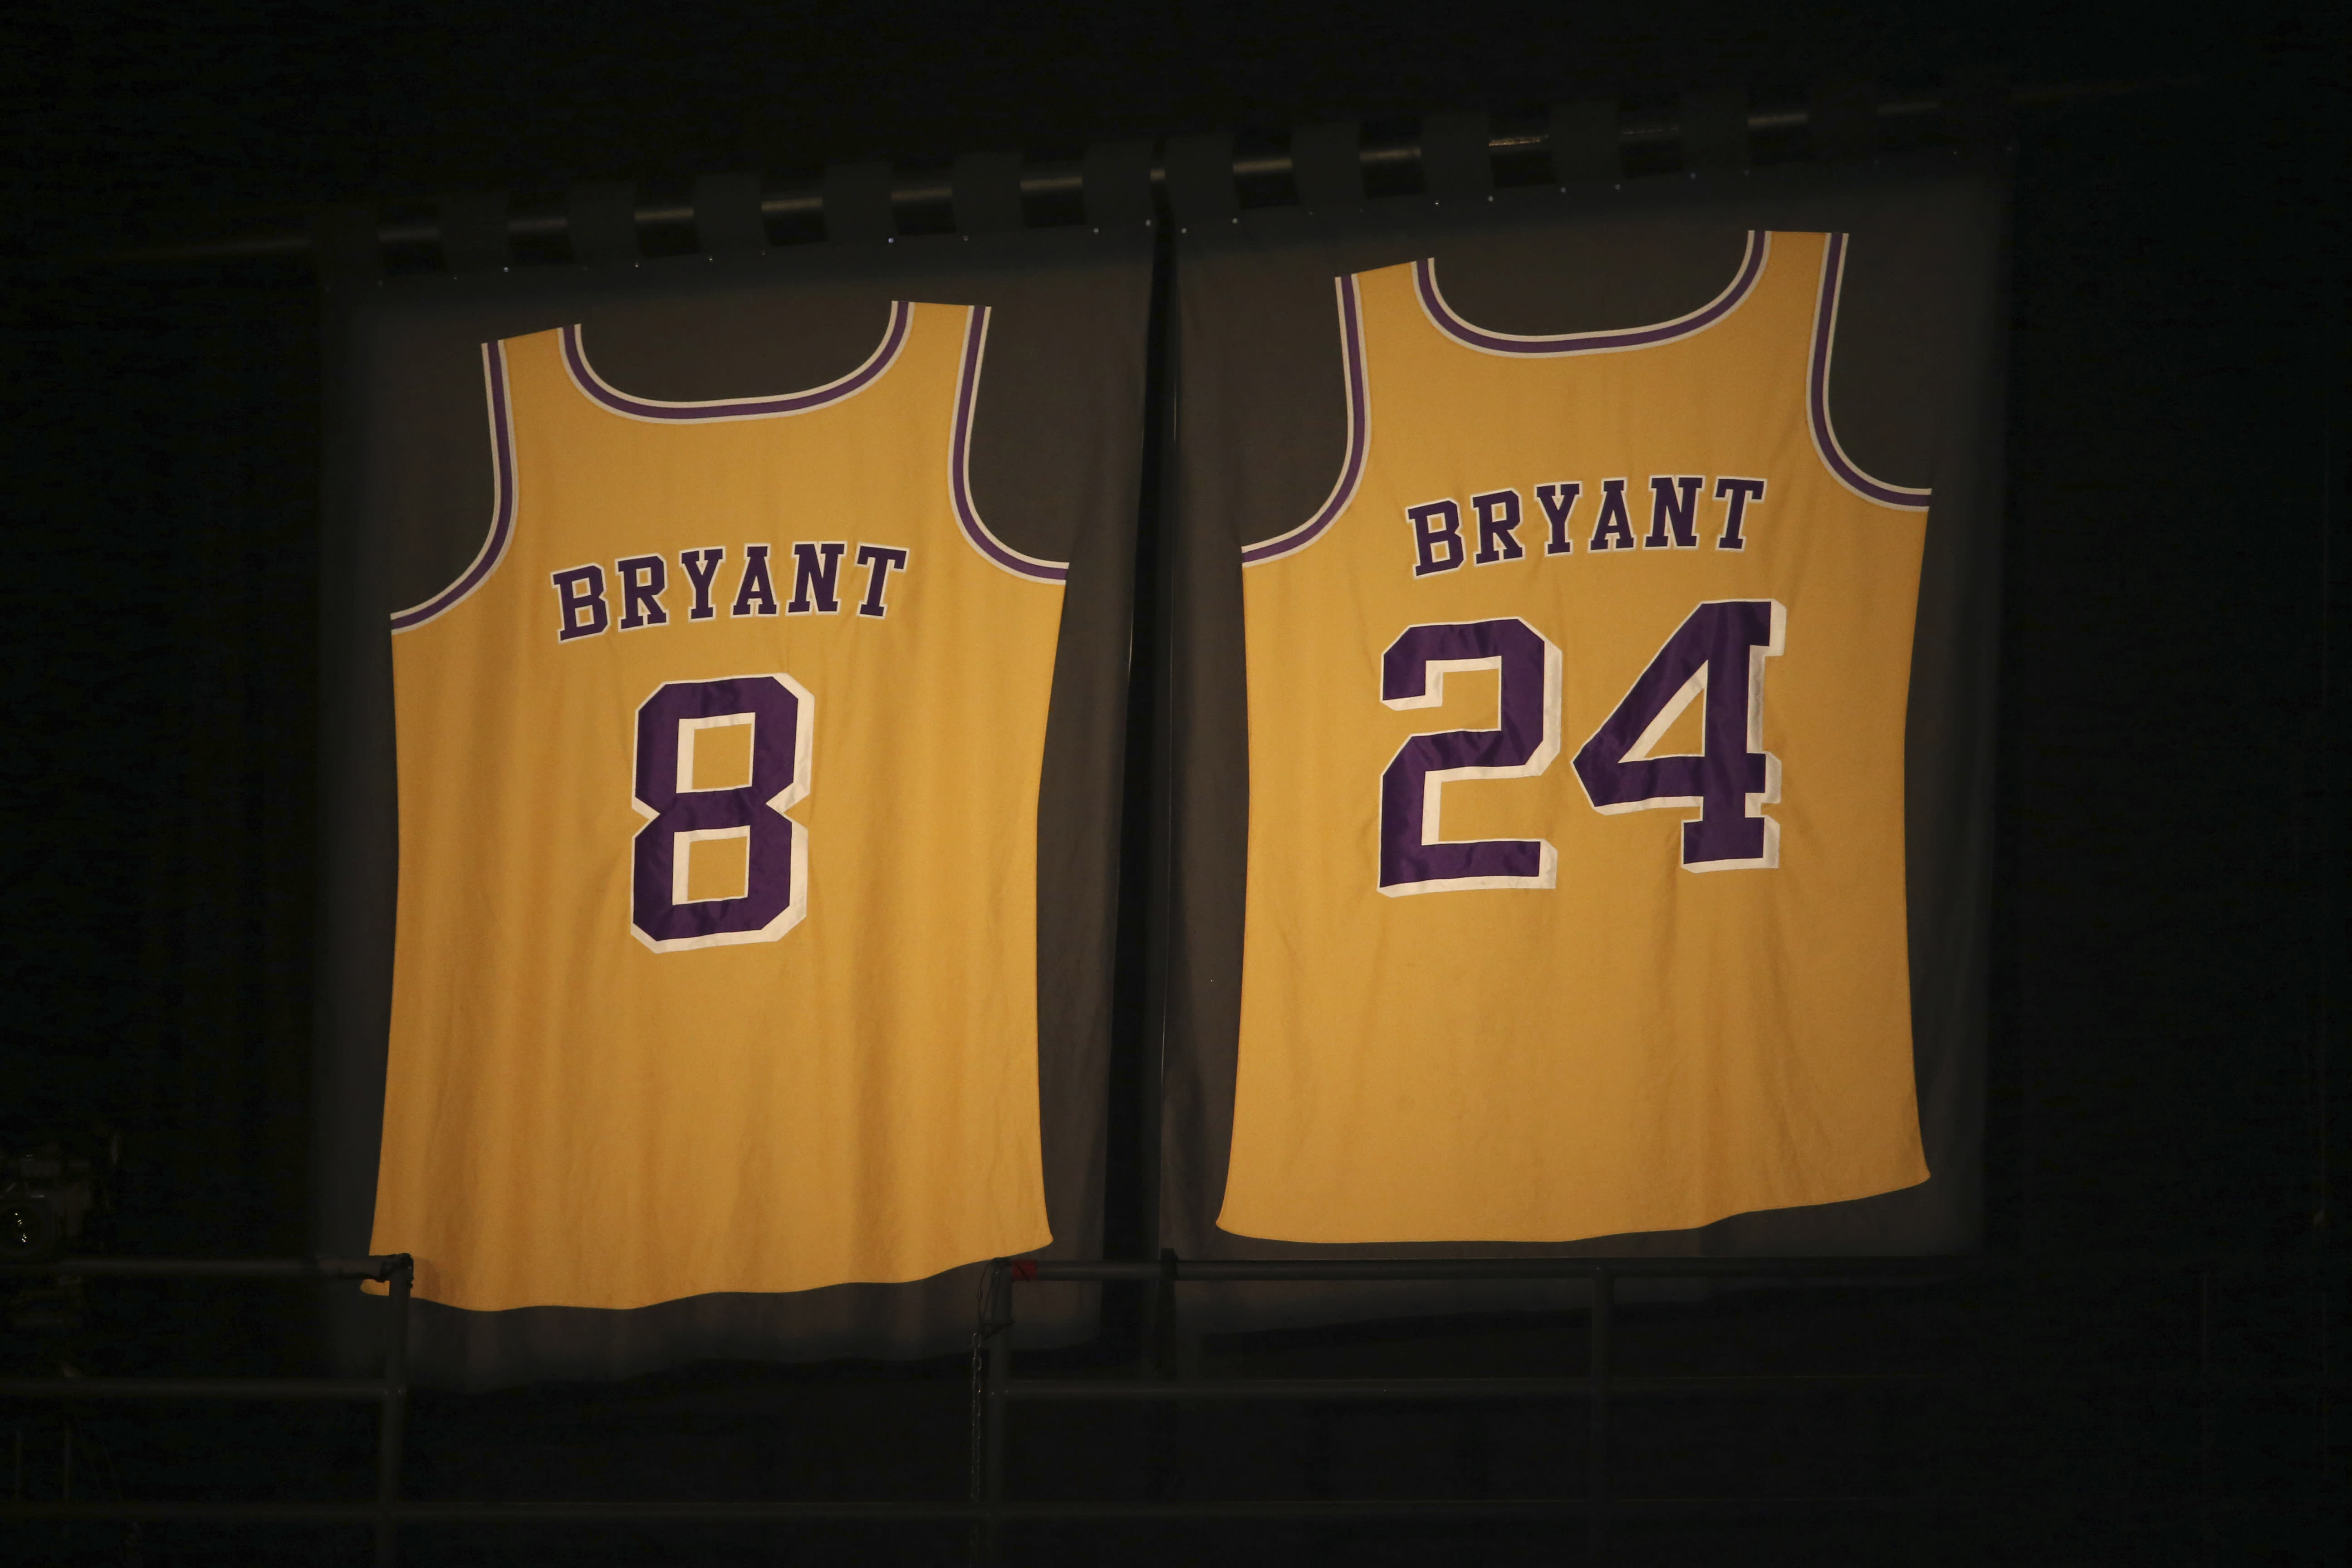 Los Angeles Lakers jersey numbers belonging to retired NBA player Kobe Bryant hang inside Staples Center prior to the start of the 62nd annual Grammy Awards on Sunday, Jan. 26, 2020, in Los Angeles. Bryant, the 18-time NBA All-Star who won five championships during a 20-year career with the Los Angeles Lakers, died in a helicopter crash Sunday. He was 41. (Photo: Matt Sayles/Invision/AP)